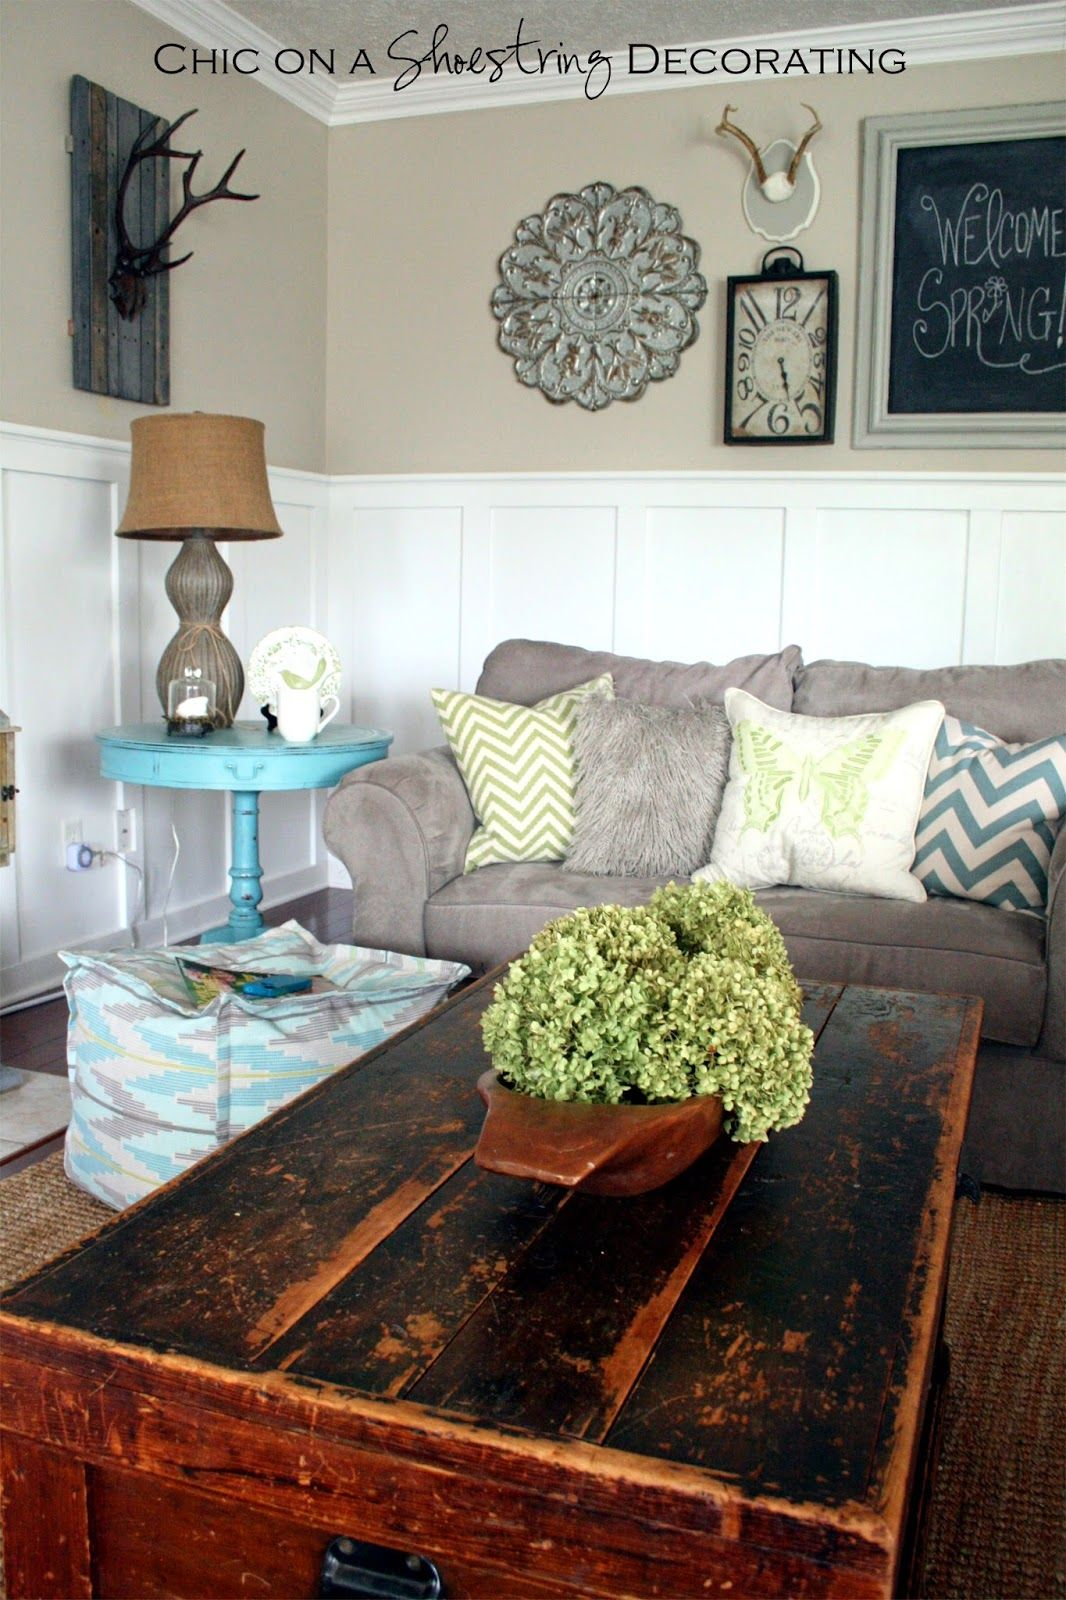 My Farmhouse Chic Living Room Reveal. I love the old trunk